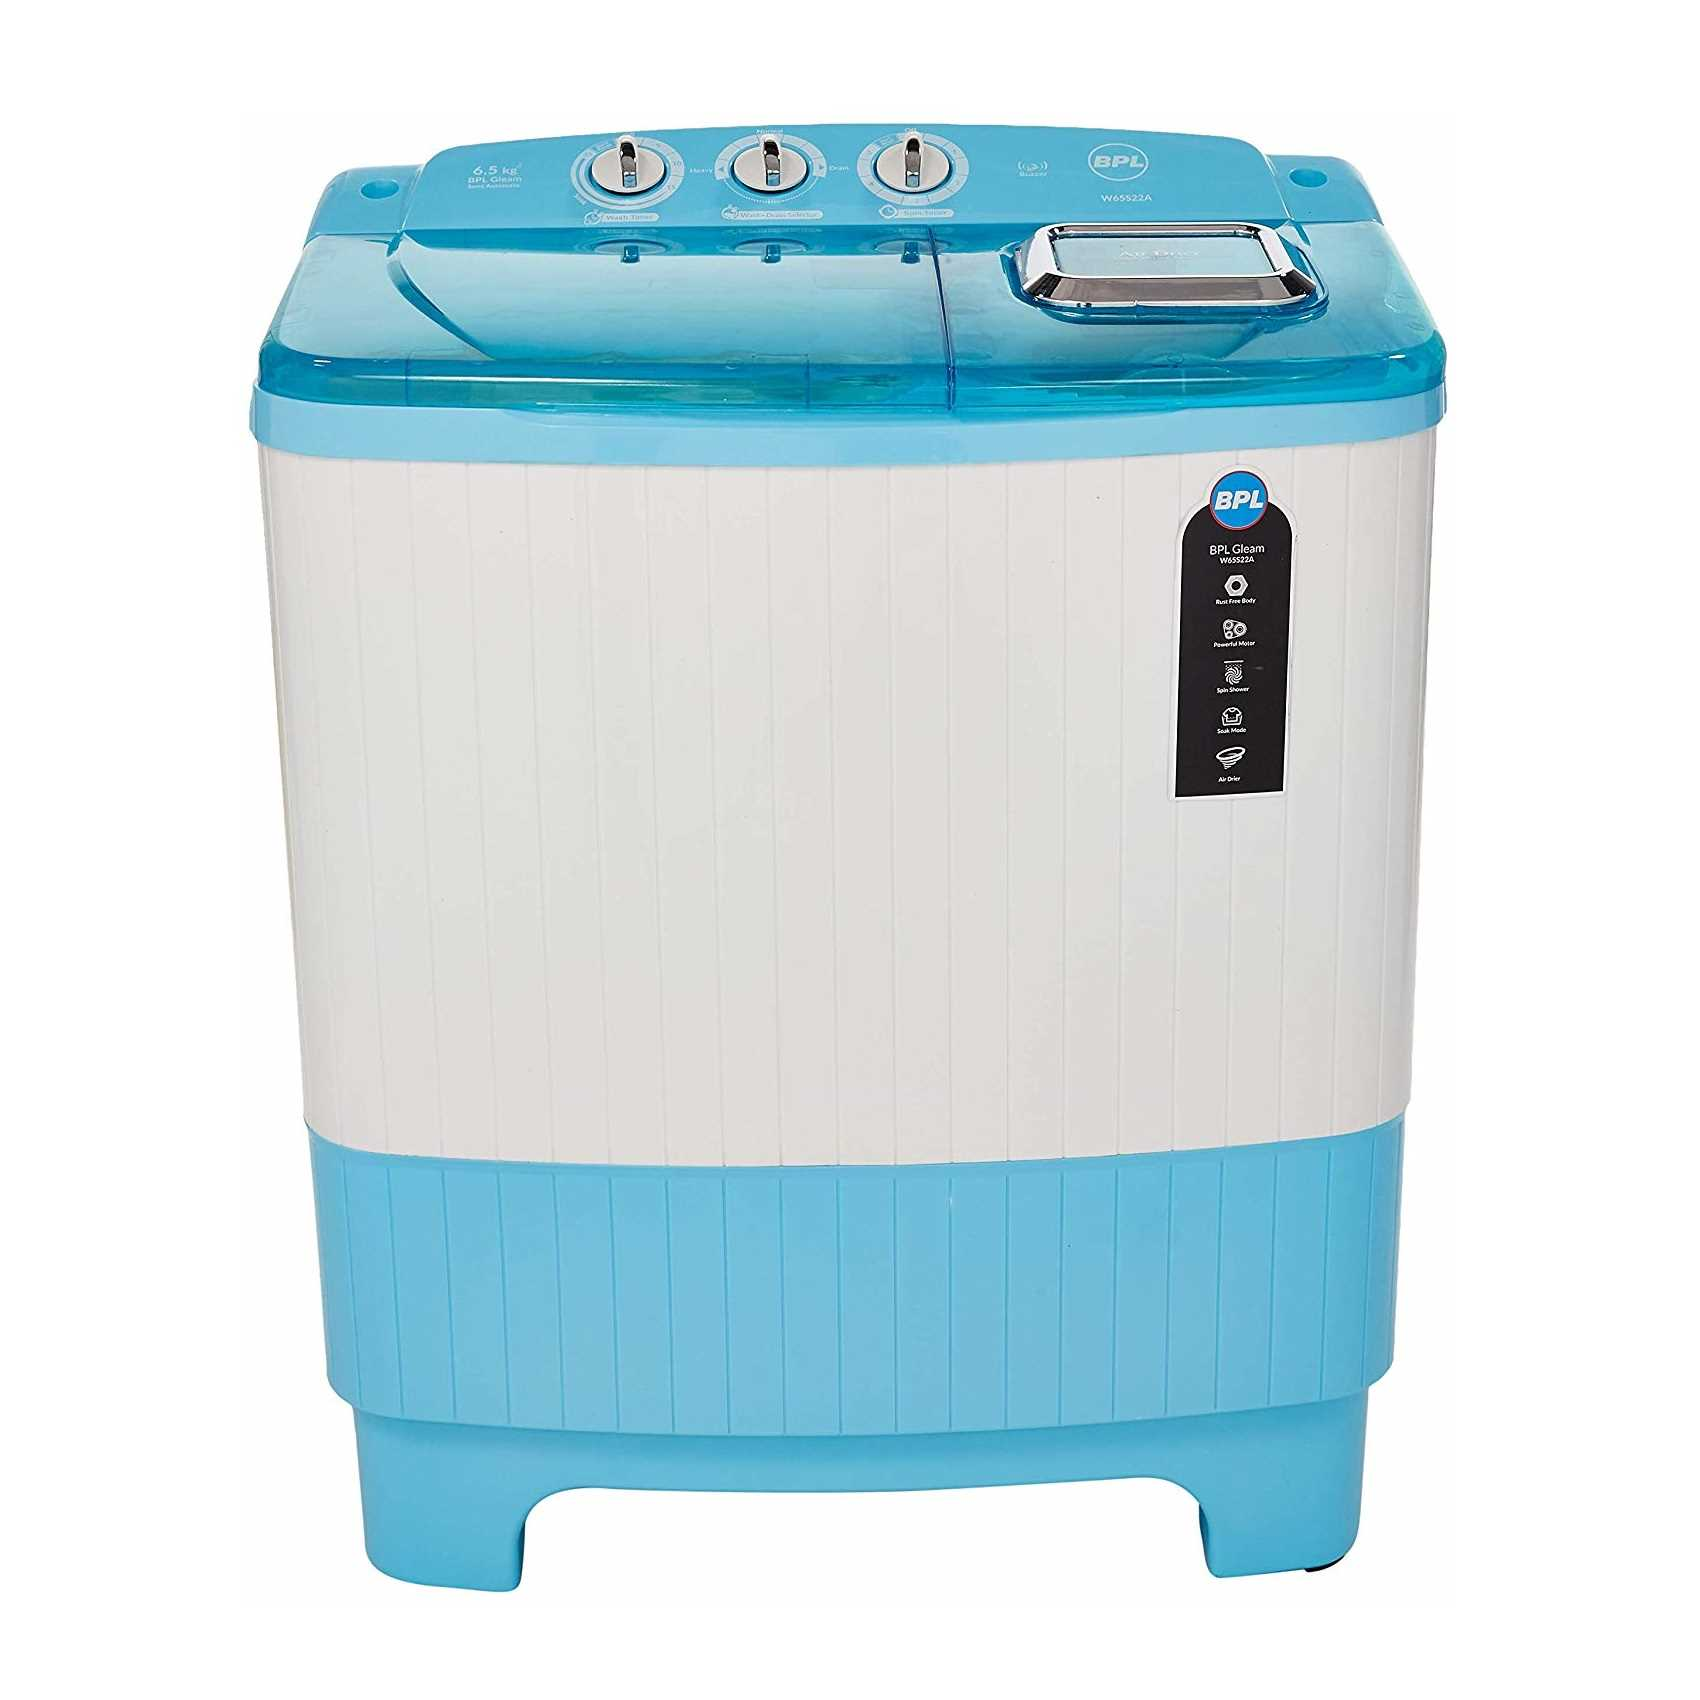 BPL W65S22A 6.5 Kg Semi Automatic Top Loading Washing Machine